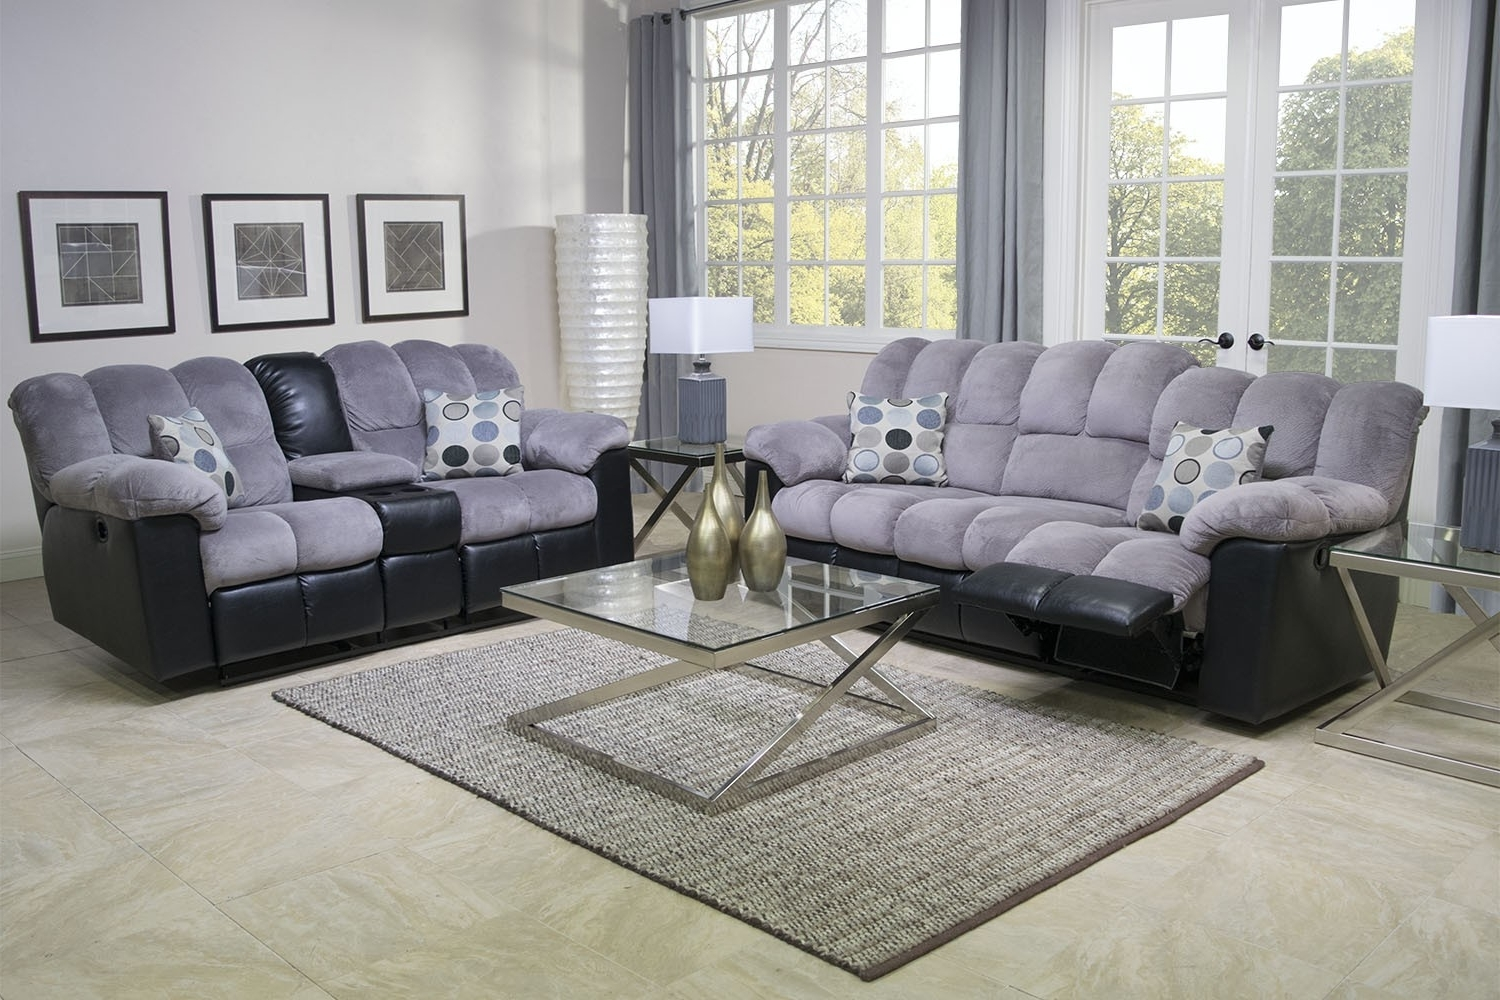 Trendy Fountain Gray Reclining Sofa Living Room/sofas (View 18 of 20)